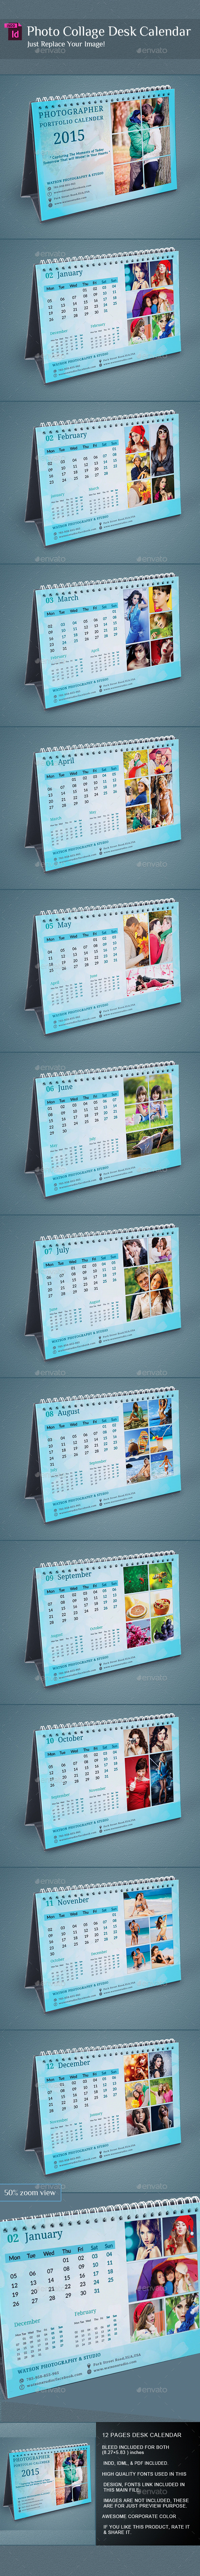 GraphicRiver InDesign Photo Collage Desk Calender 9806615